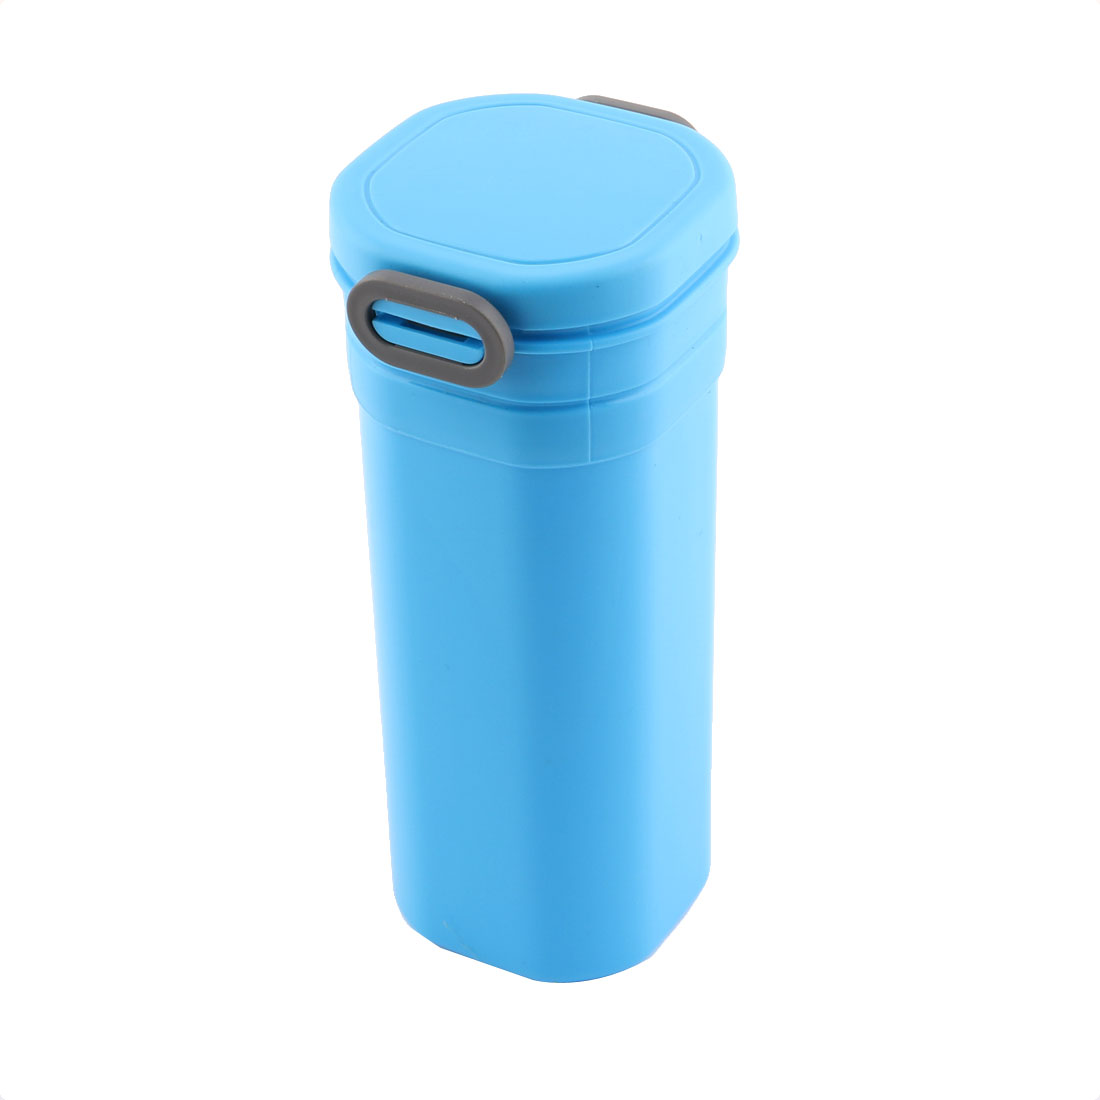 Family Office Plastic Portable Water Coffee Holder Bottle Cup Blue Gray 600ml